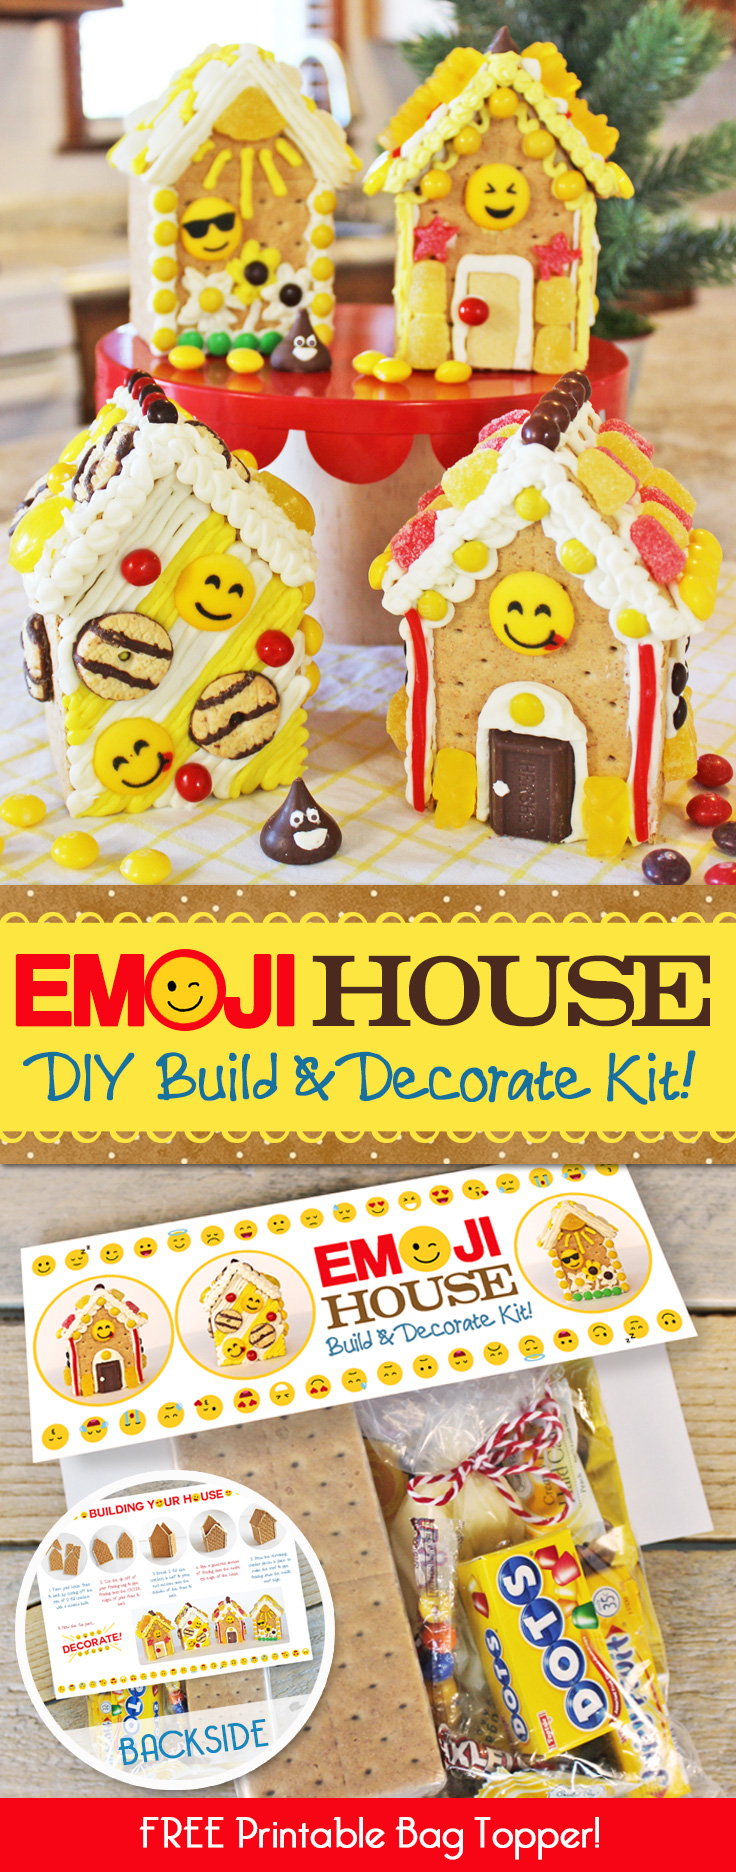 Looking for a fun Emoji Birthday Party idea? Our kids LOVED these Emoji Gingerbread Houses! They're just made from graham crackers and are EASY to make! Also includes a free printable bag topper to make your own Emoji Gingerbread House Build & Decorate kits! #Emoji #Birthday #Party #Ideas #Gingerbread #House #Decorations #Christmas